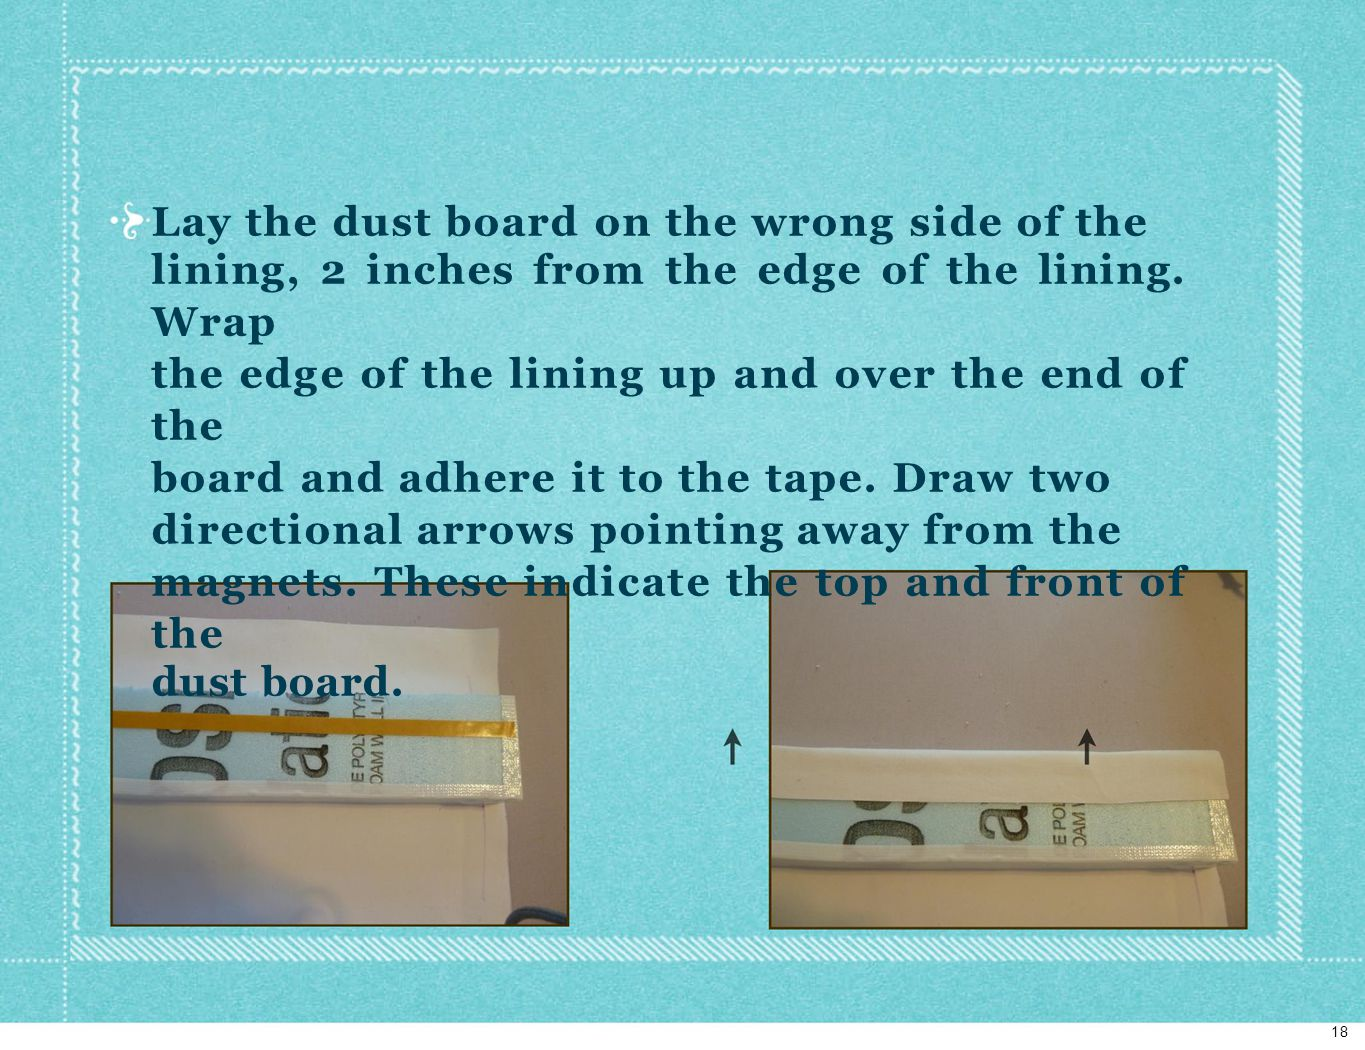 Lay the dust board on the wrong side of the lining, 2 inches from the edge of the lining.